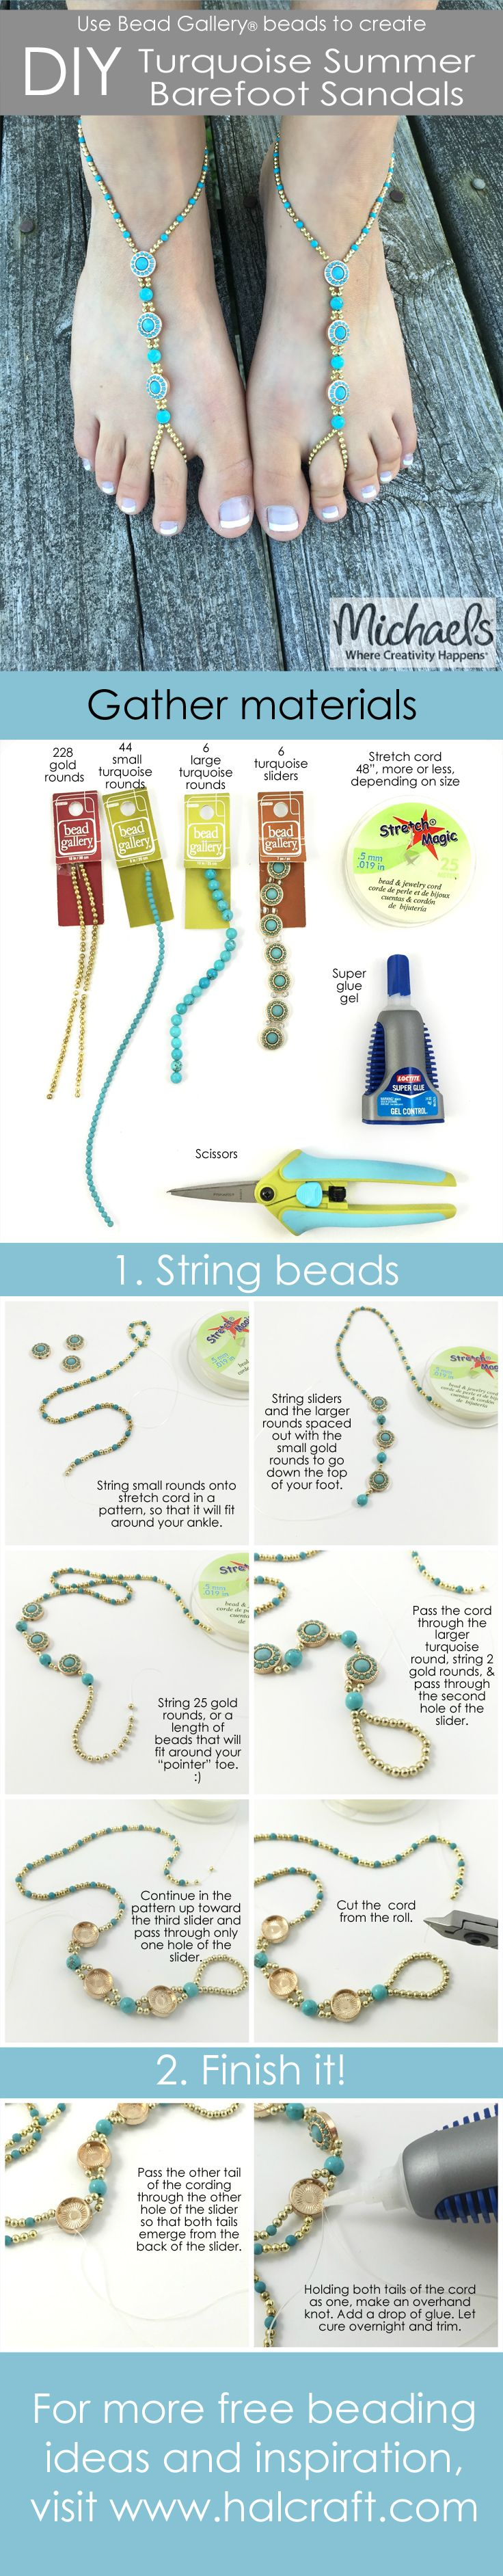 DIY Barefoot Sandals by @missmollys featuring Bead Gallery beads available at @michaelsstores #madewithmichaels